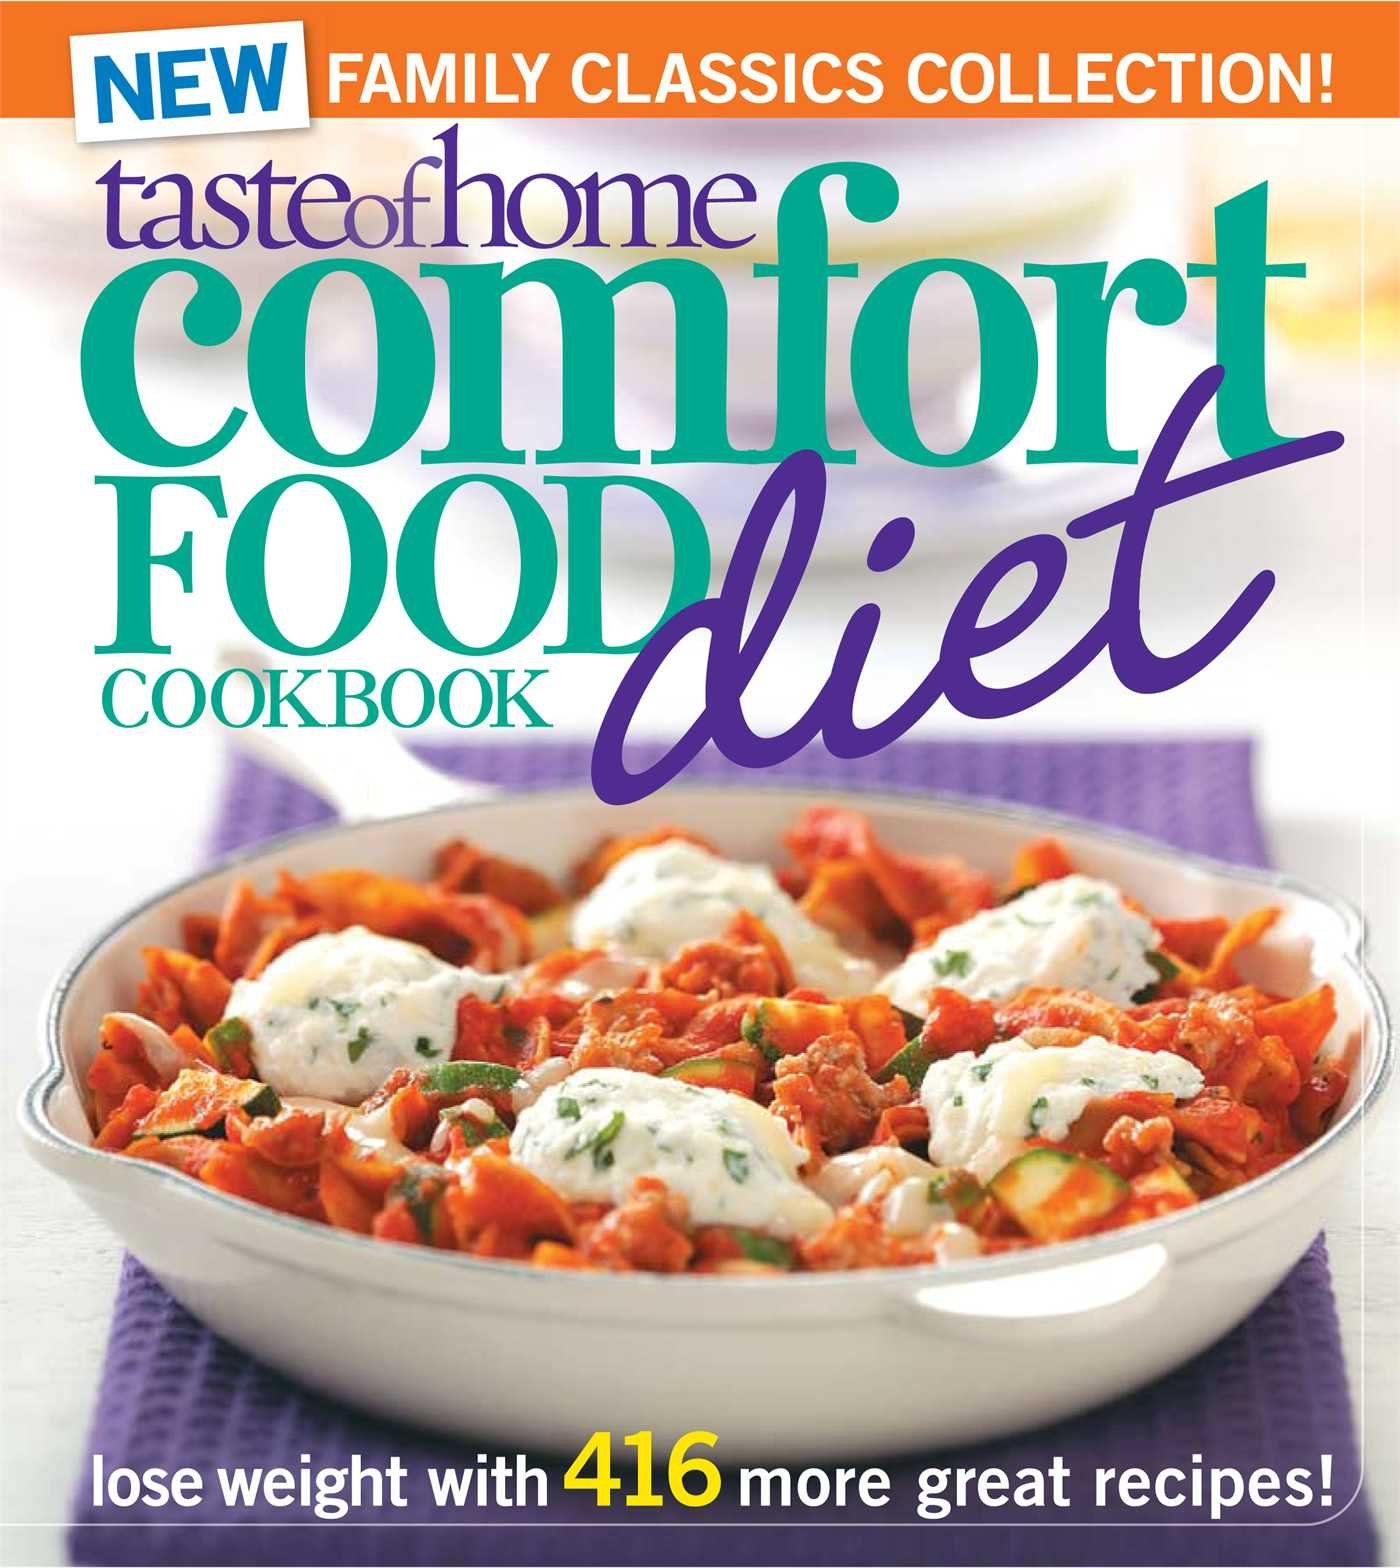 Taste of home comfort food diet cookbook new family classics taste of home comfort food diet cookbook new family classics collection lose weight with 416 more great recipes taste of home 9780898218299 forumfinder Images